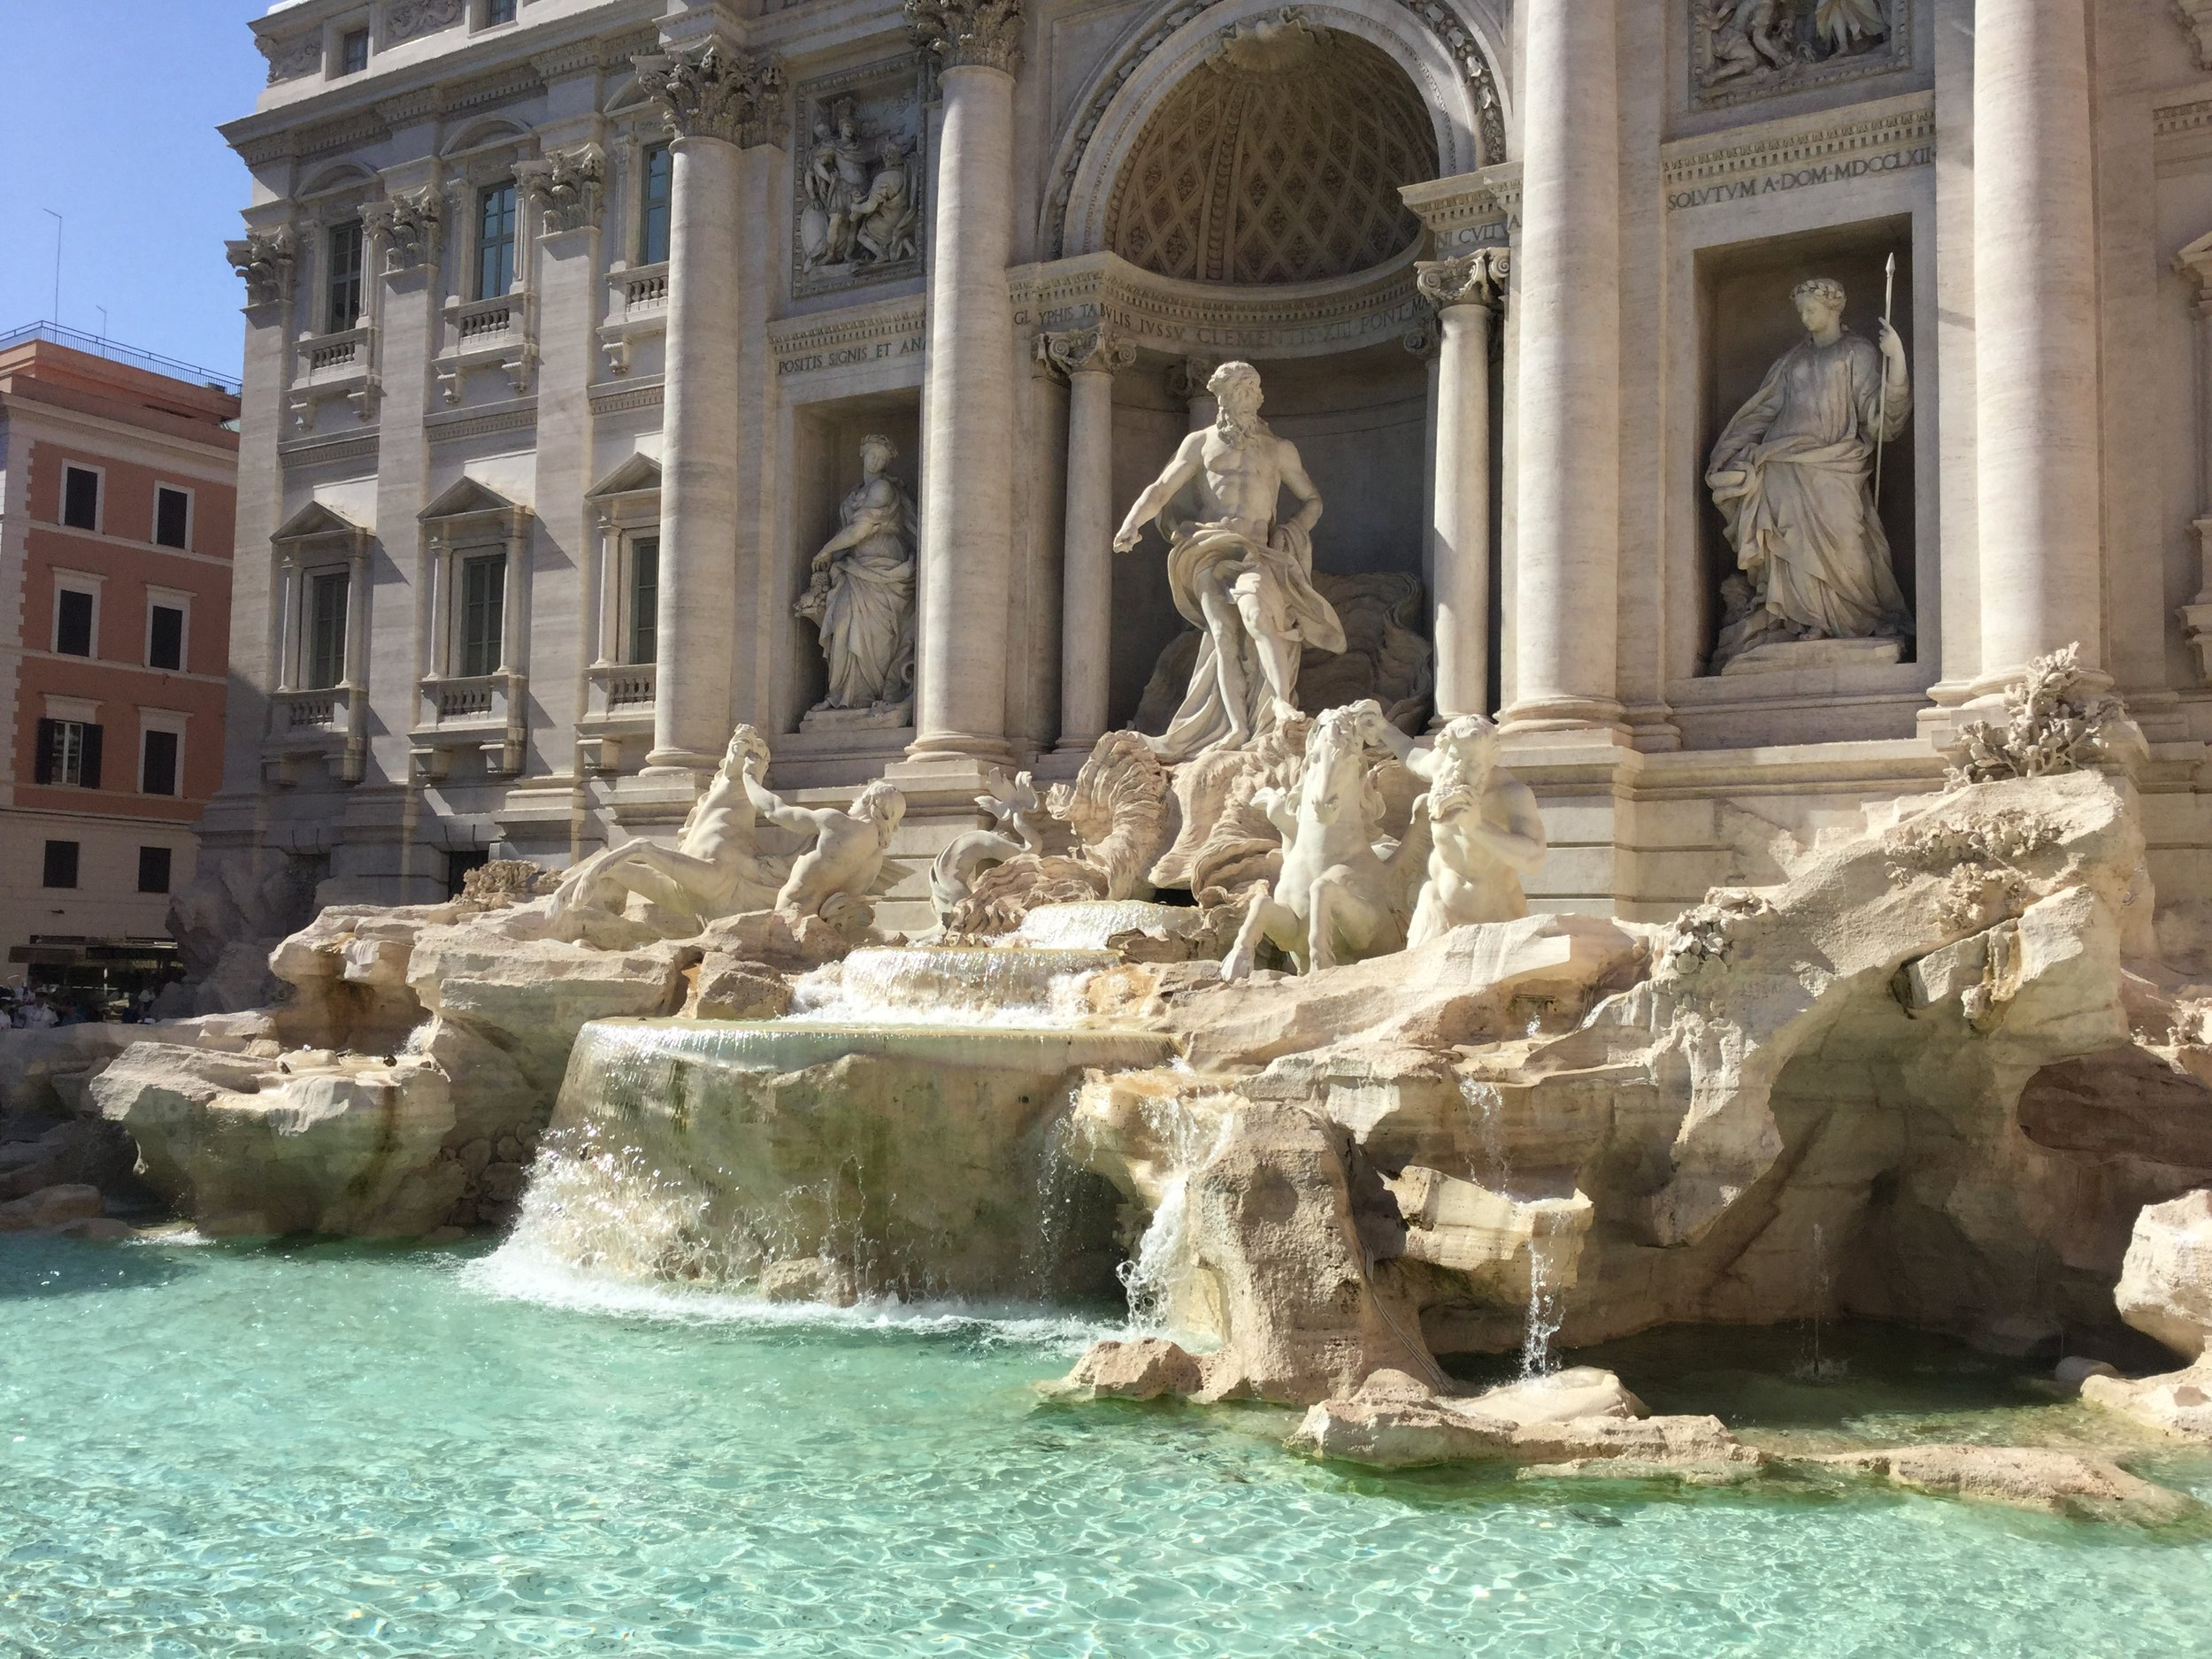 Fontana di Trevi. Couldn't see Anita Ekberg for all the crowds.